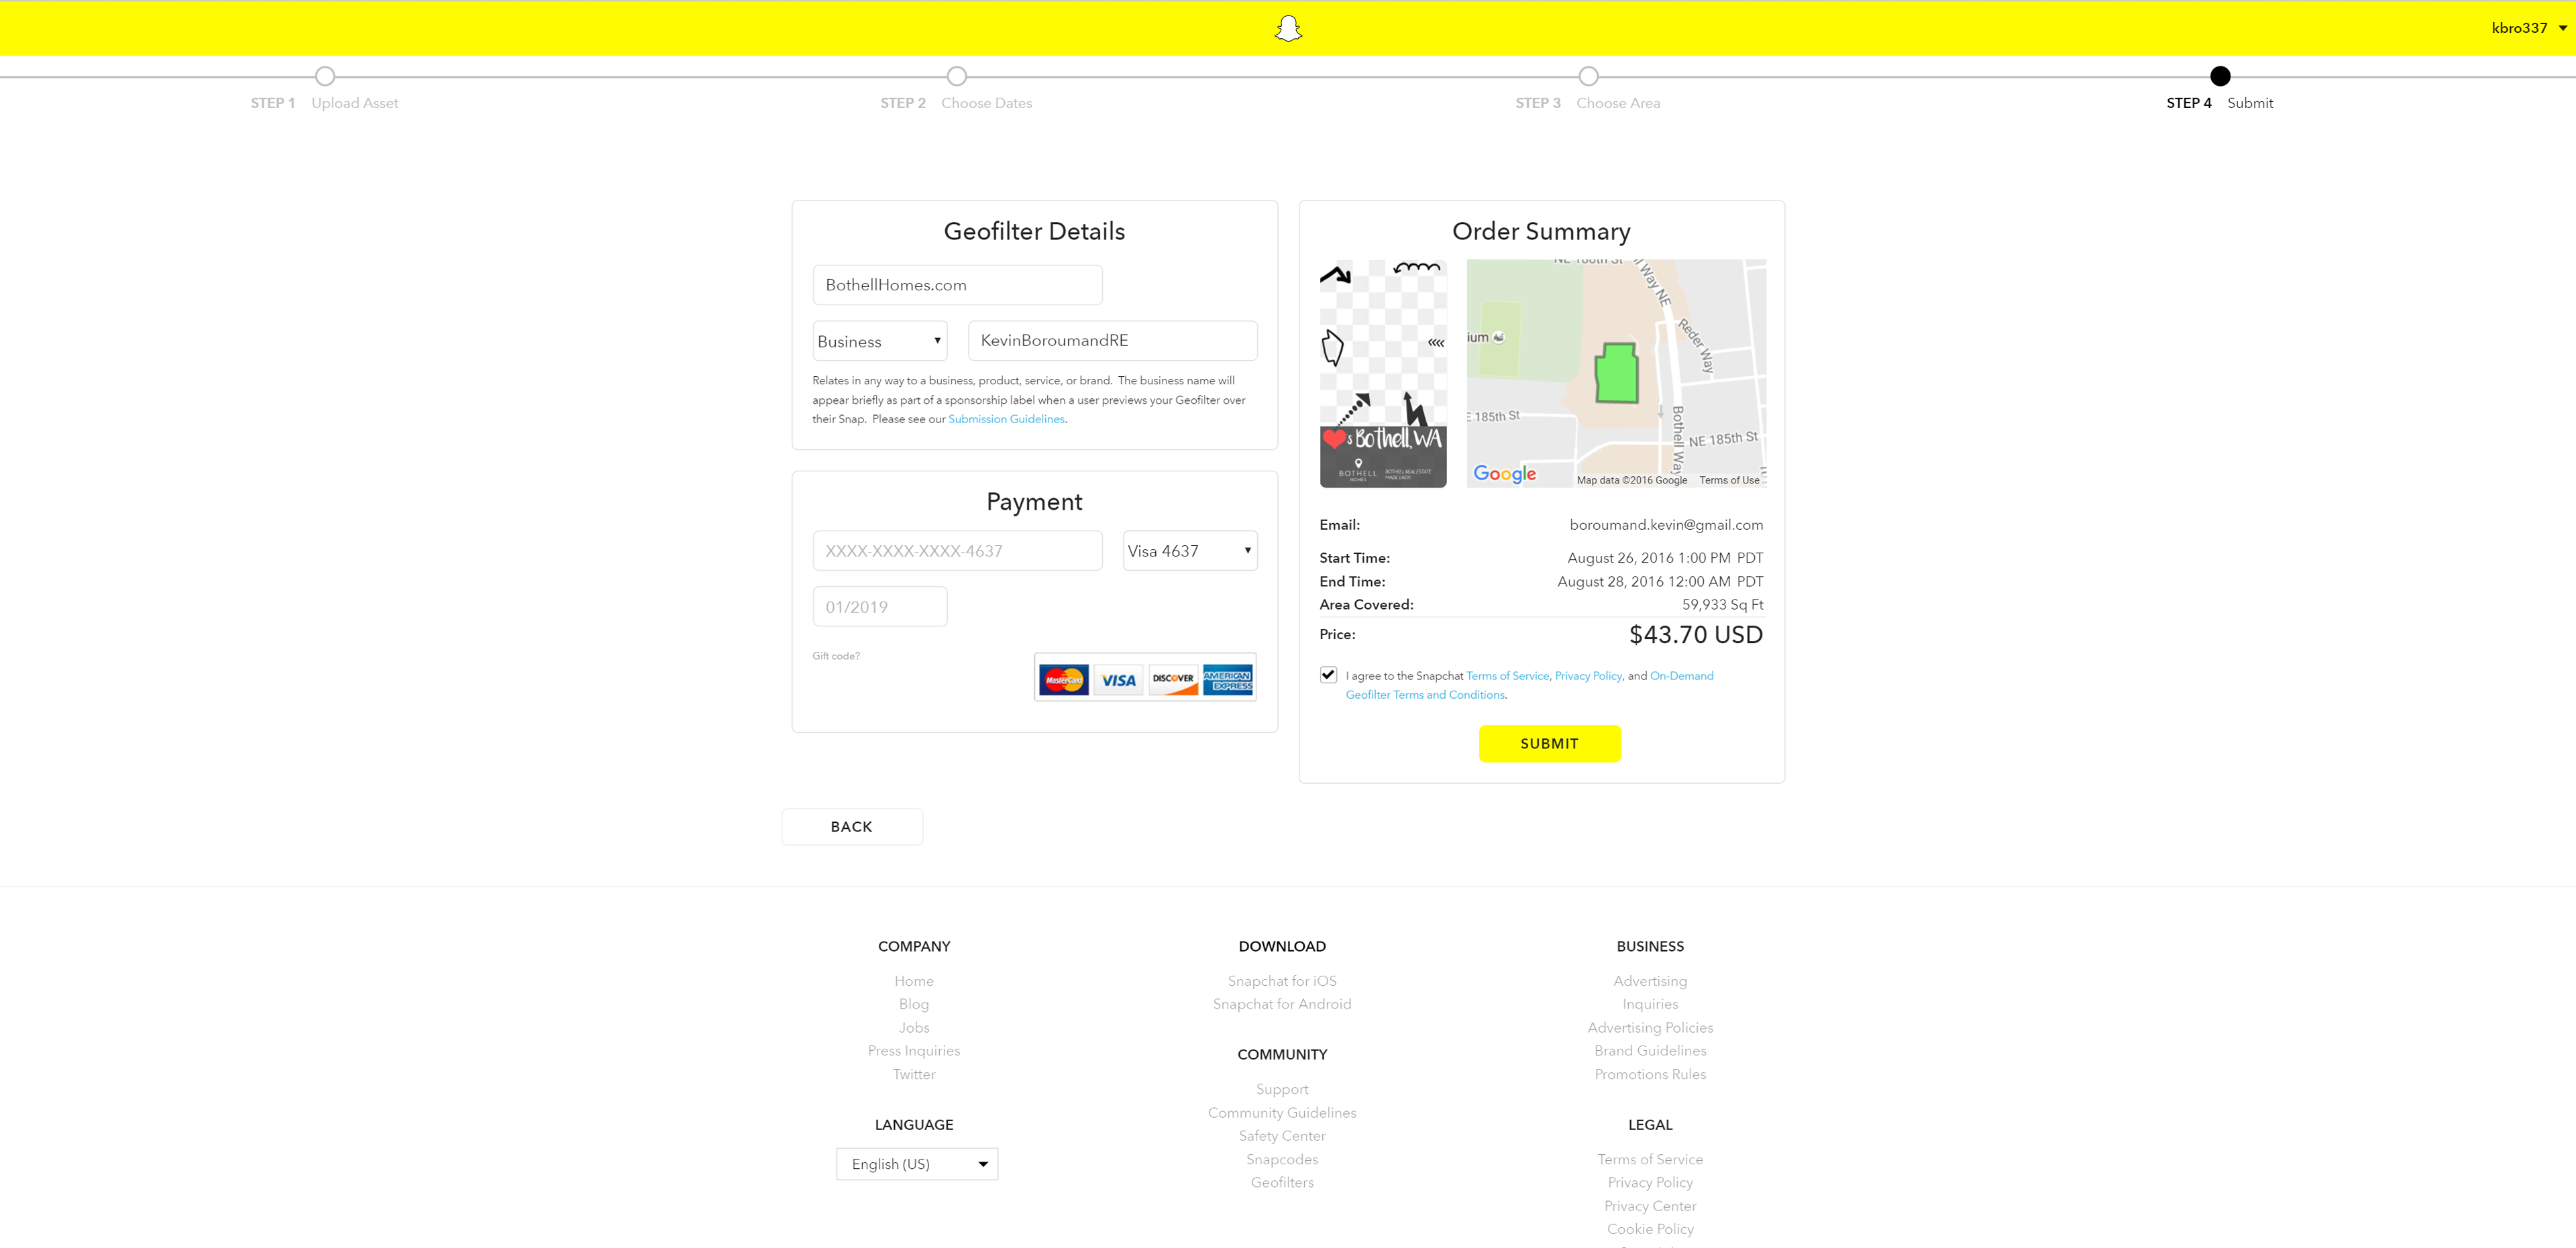 Snapchat on demand geofilters guide for real estate bothellhomes on this page you will need to choose a geofilter name and a business name you cannot enter your website no symbols just words snapchat may place a biocorpaavc Gallery